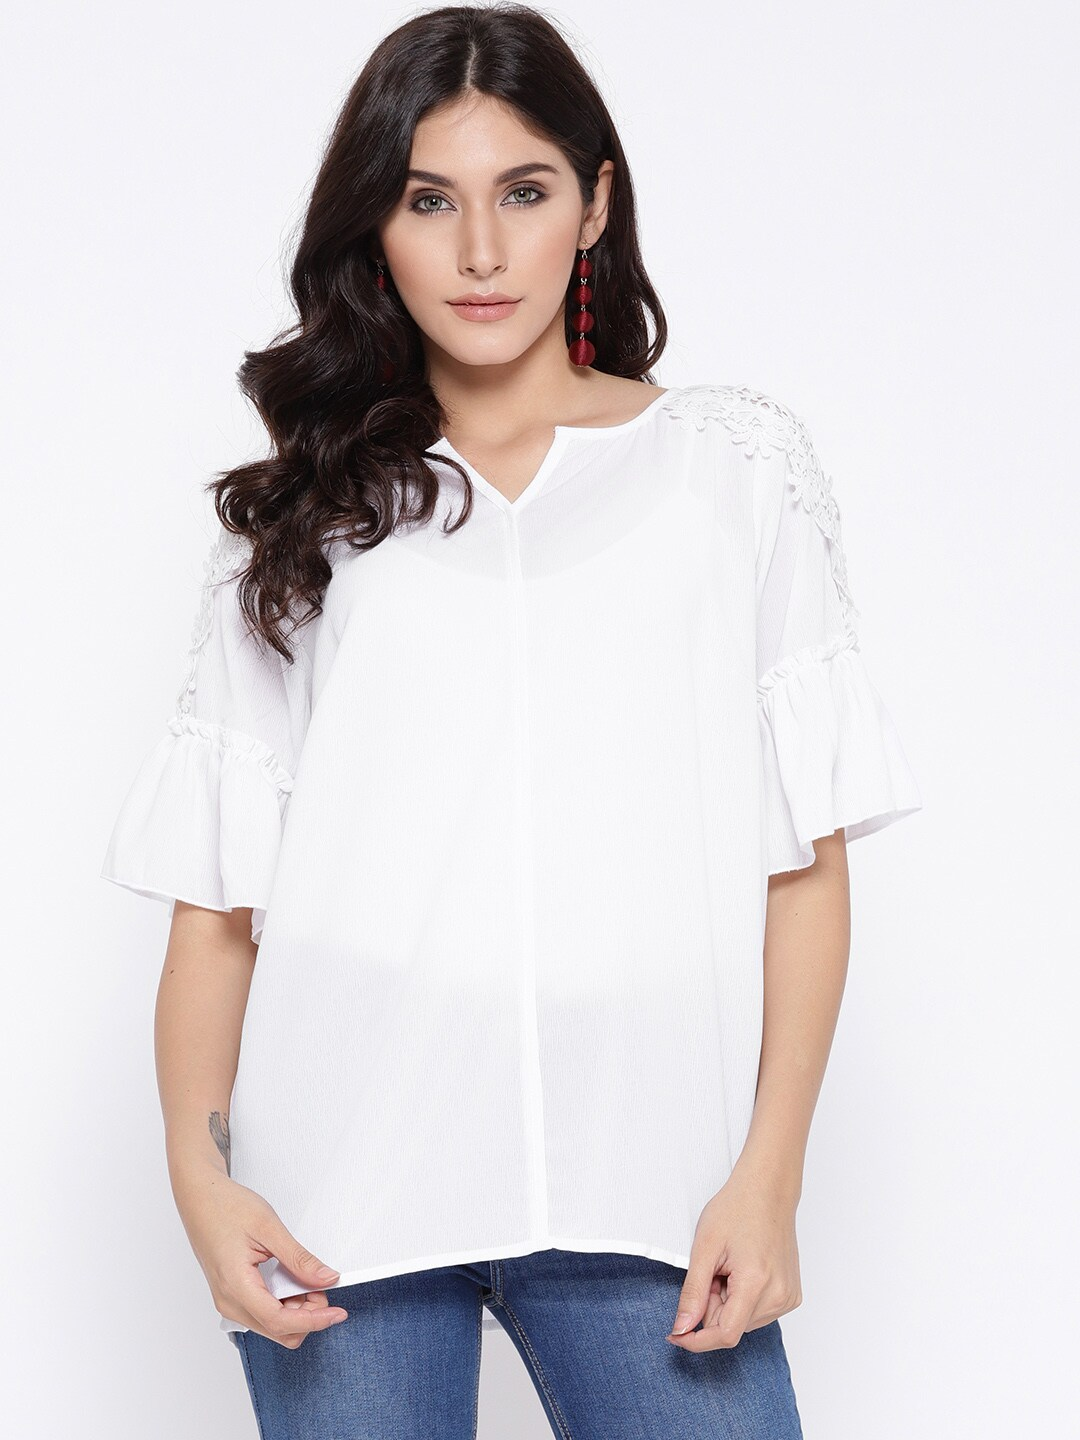 75cd6121a235 Ladies Tops - Buy Tops   T-shirts for Women Online